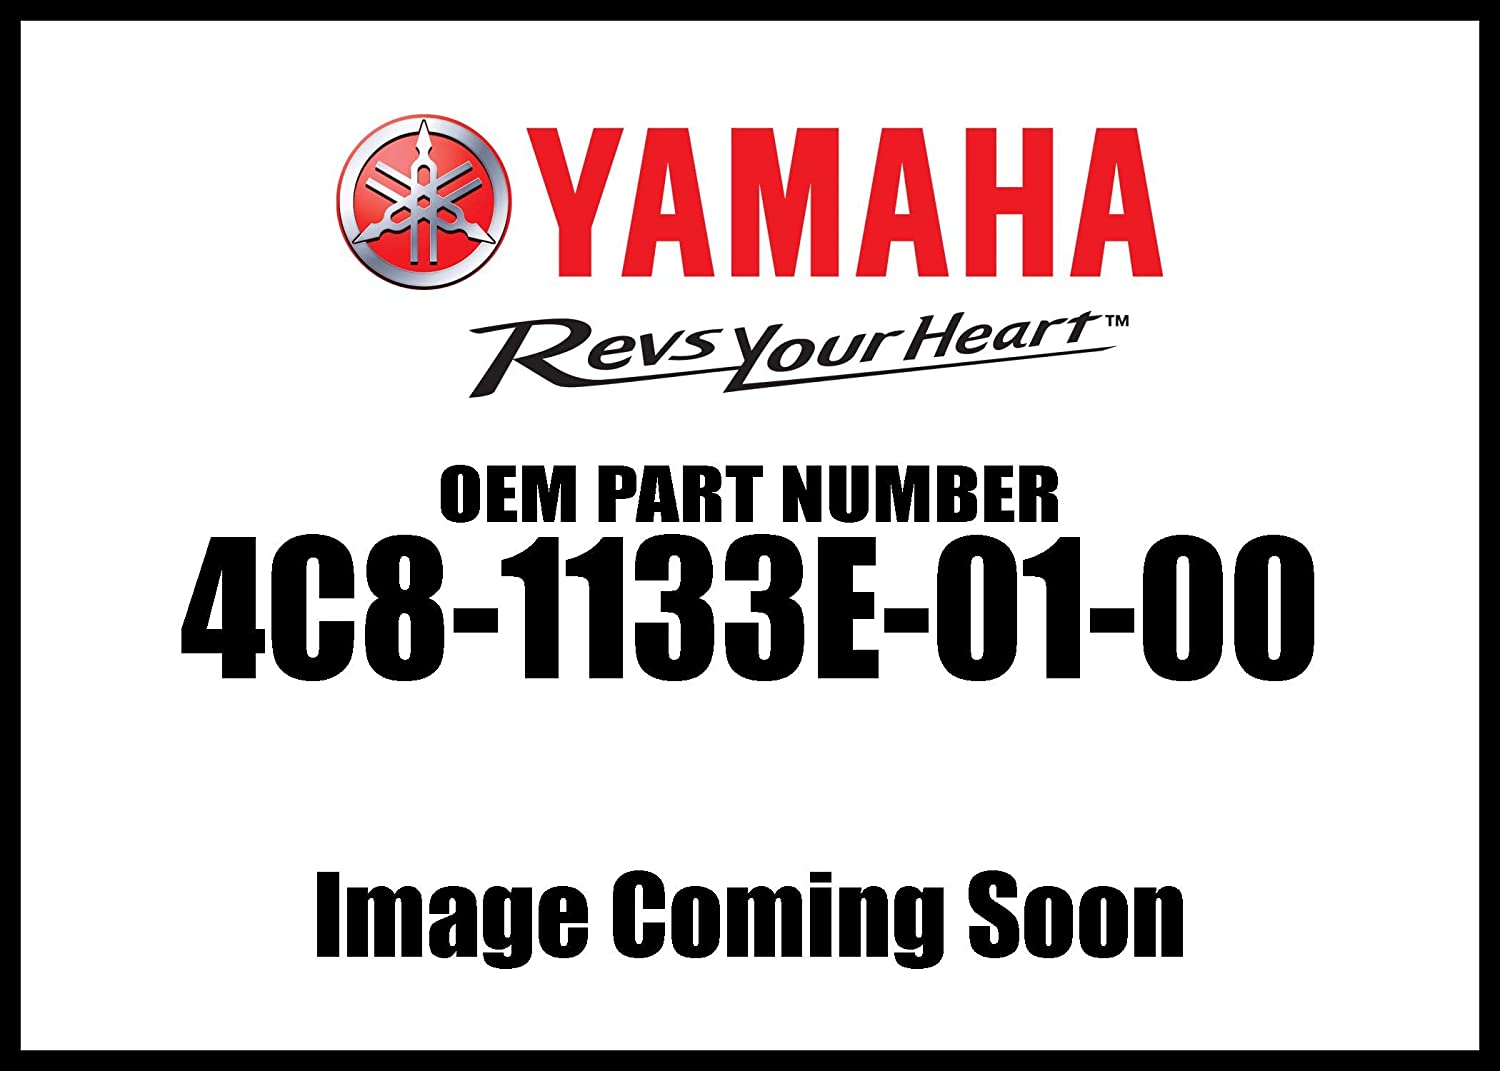 New Yamaha OEM 4C8-1133E-01-00 CABLE PULLEY 1 4C81133E0100